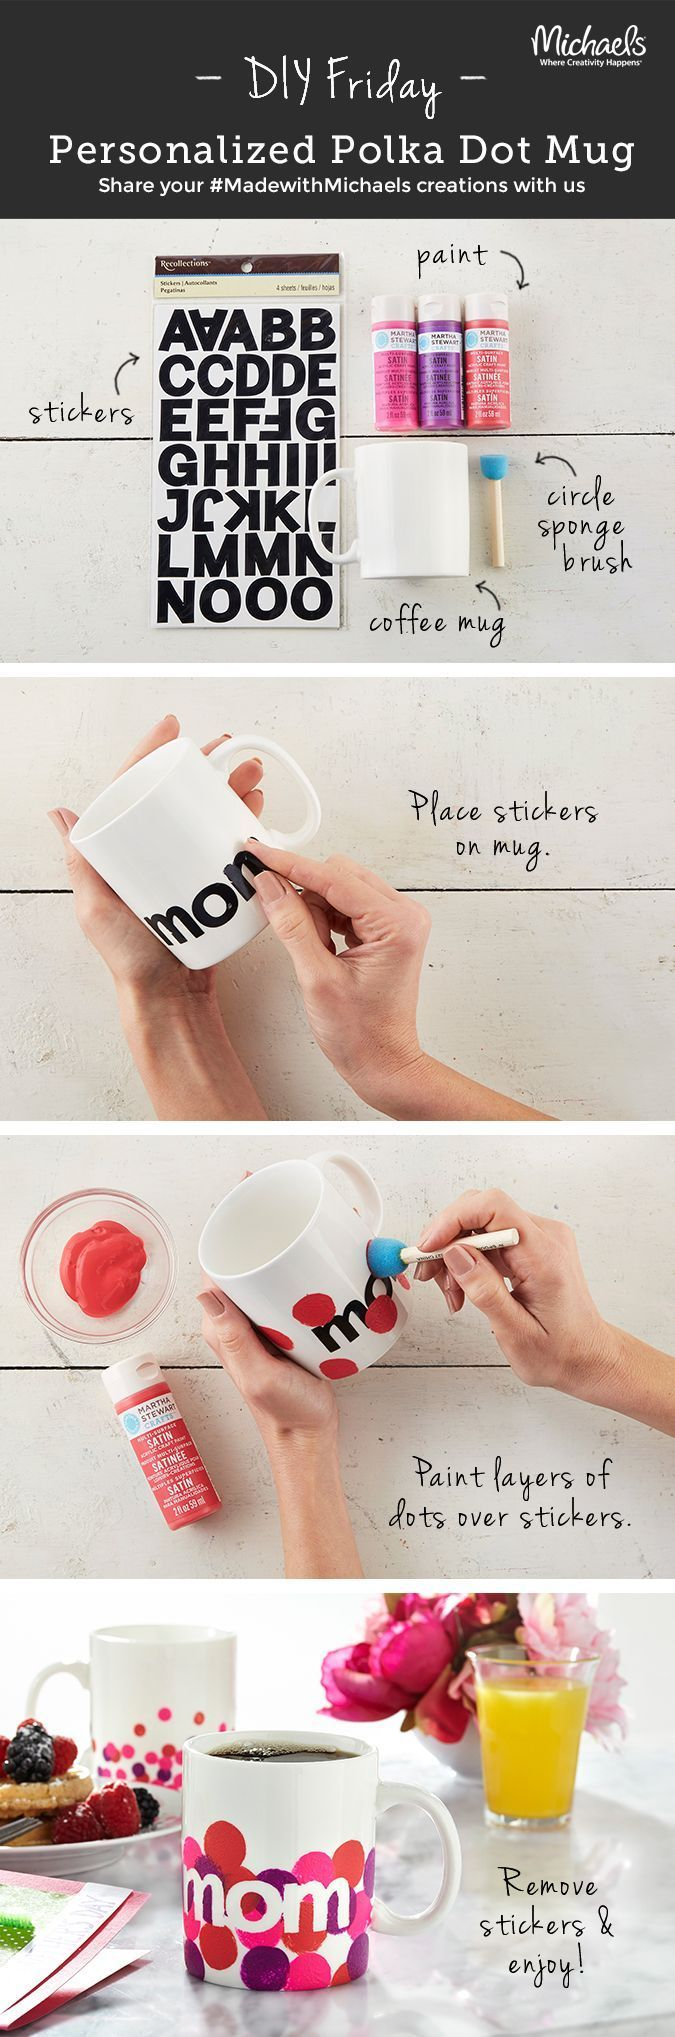 Craft a stylish personalized mug for Mom with alphabet stickers and her favorite colors of paint.